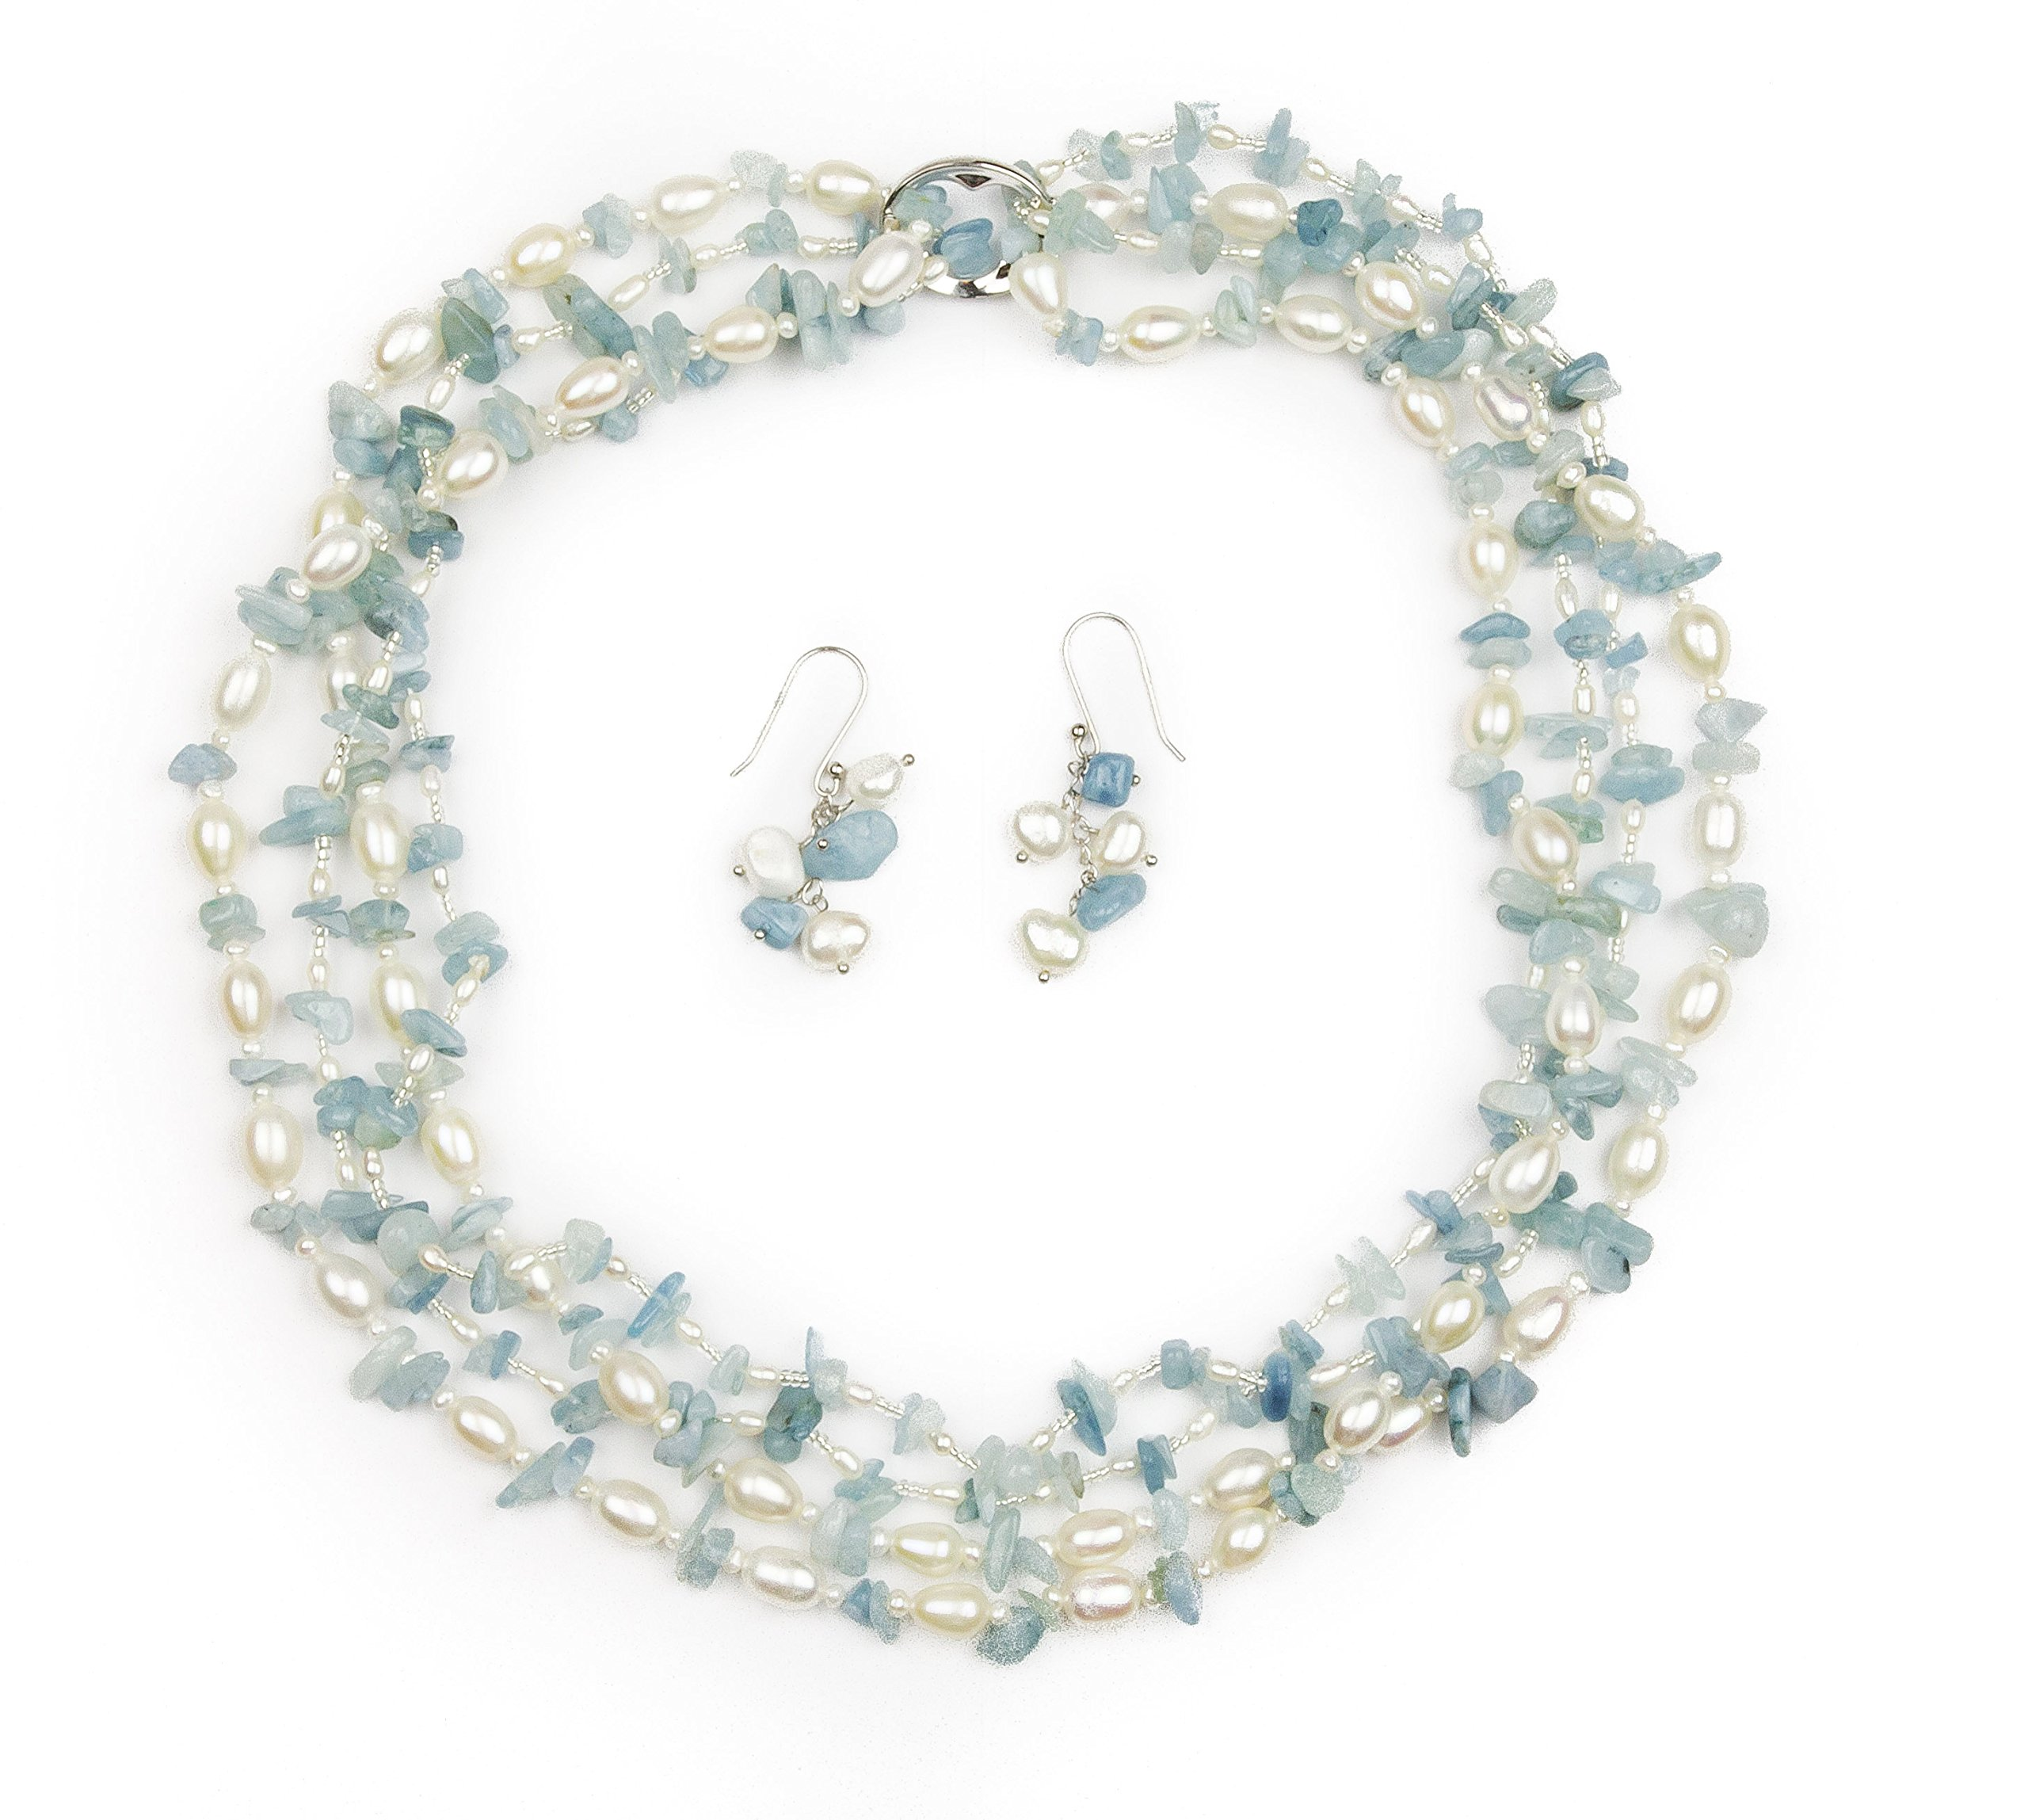 HinsonGayle 'Sky' 2-Strand Freshwater Cultured Pearl & Aquamarine Necklace & Dangle Earrings-40 in length by HinsonGayle Fine Pearl Jewelry (Image #2)